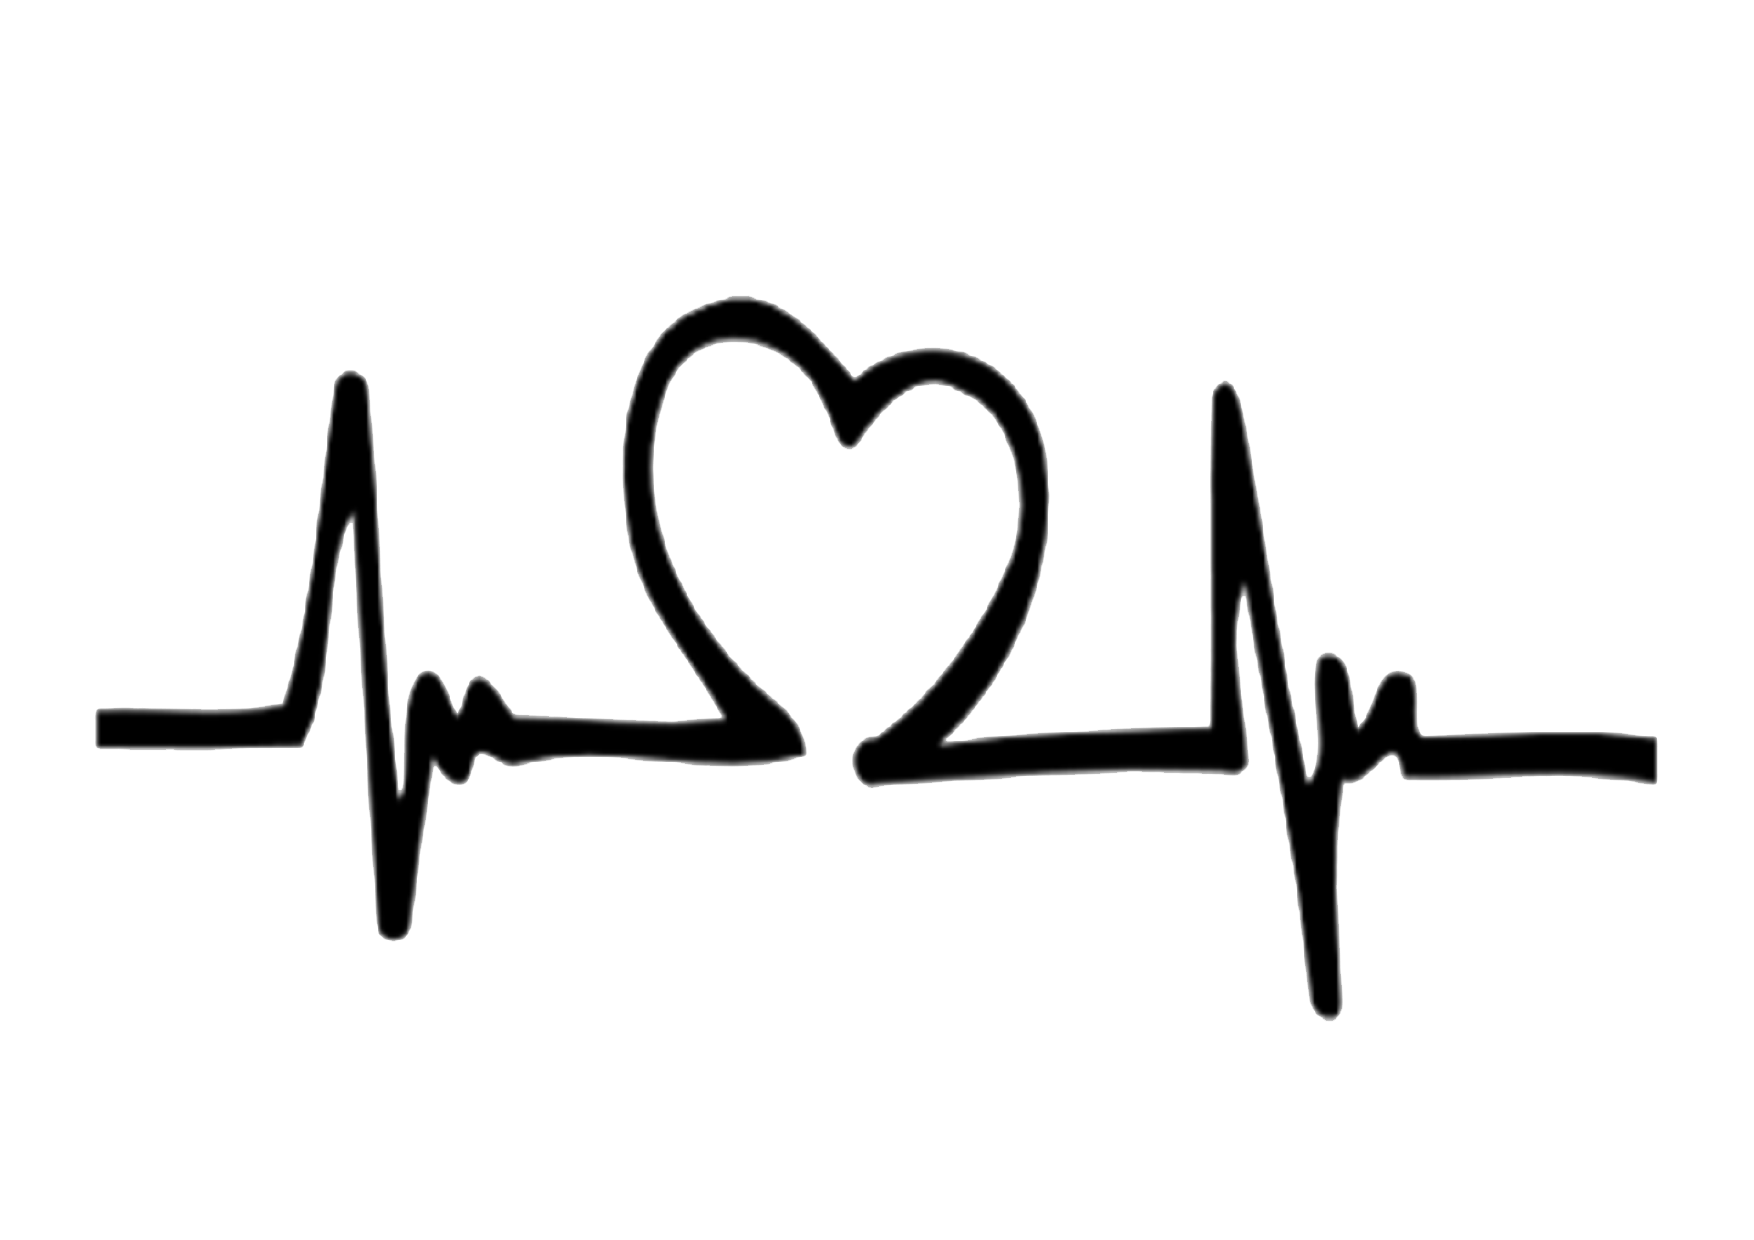 Heartbeat Png Transparent Black: Heartbeat Clipart White Background, Heartbeat White